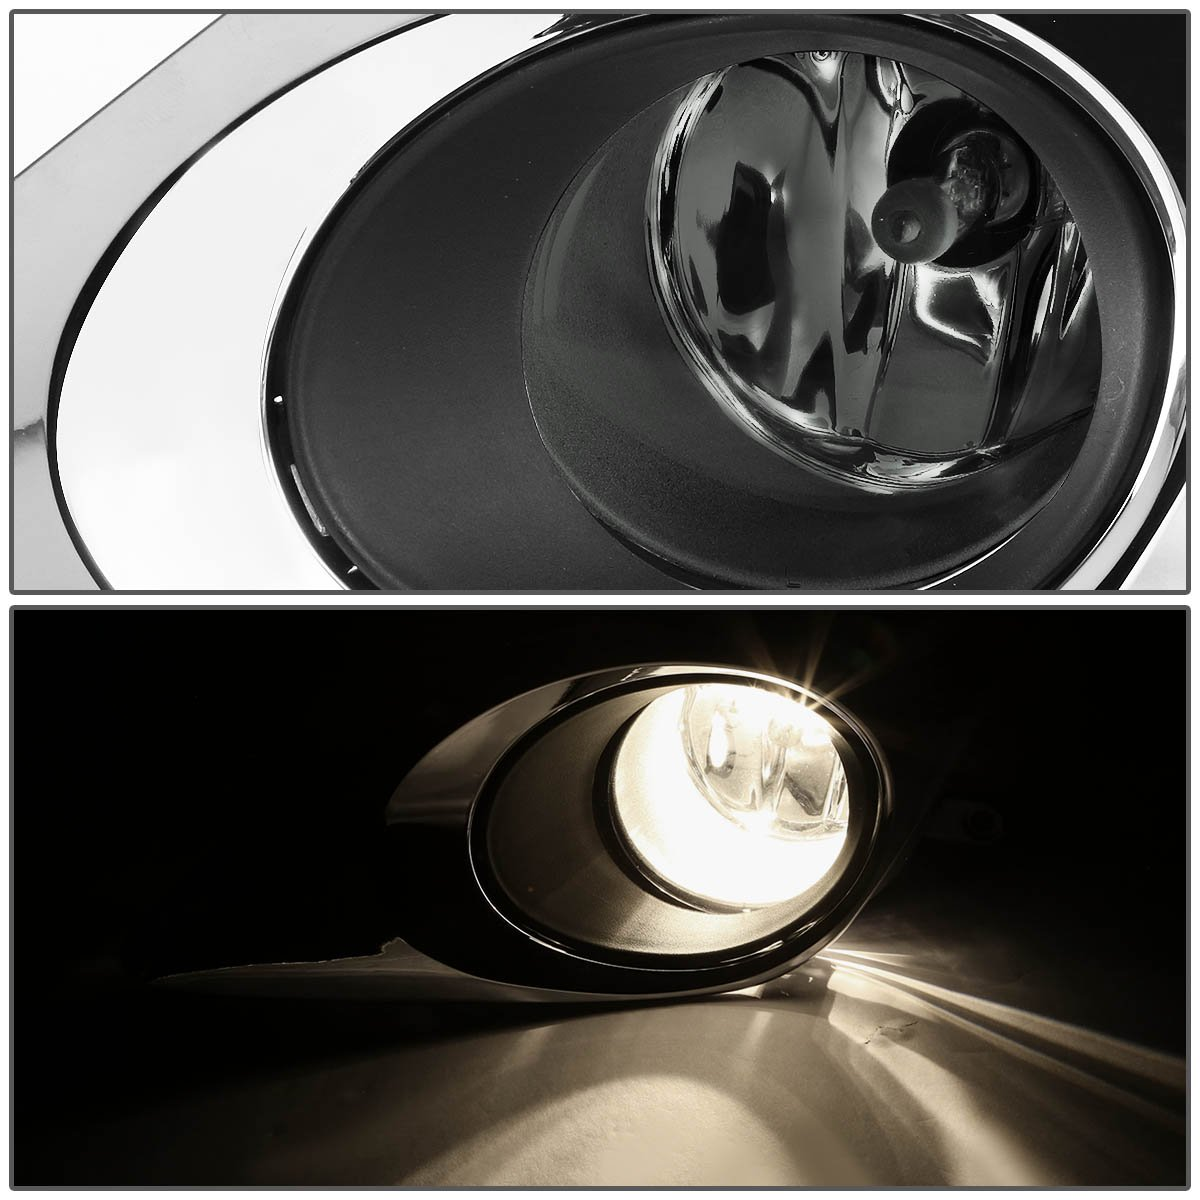 TarosTrade 36-0570-N-16687 Fog Light